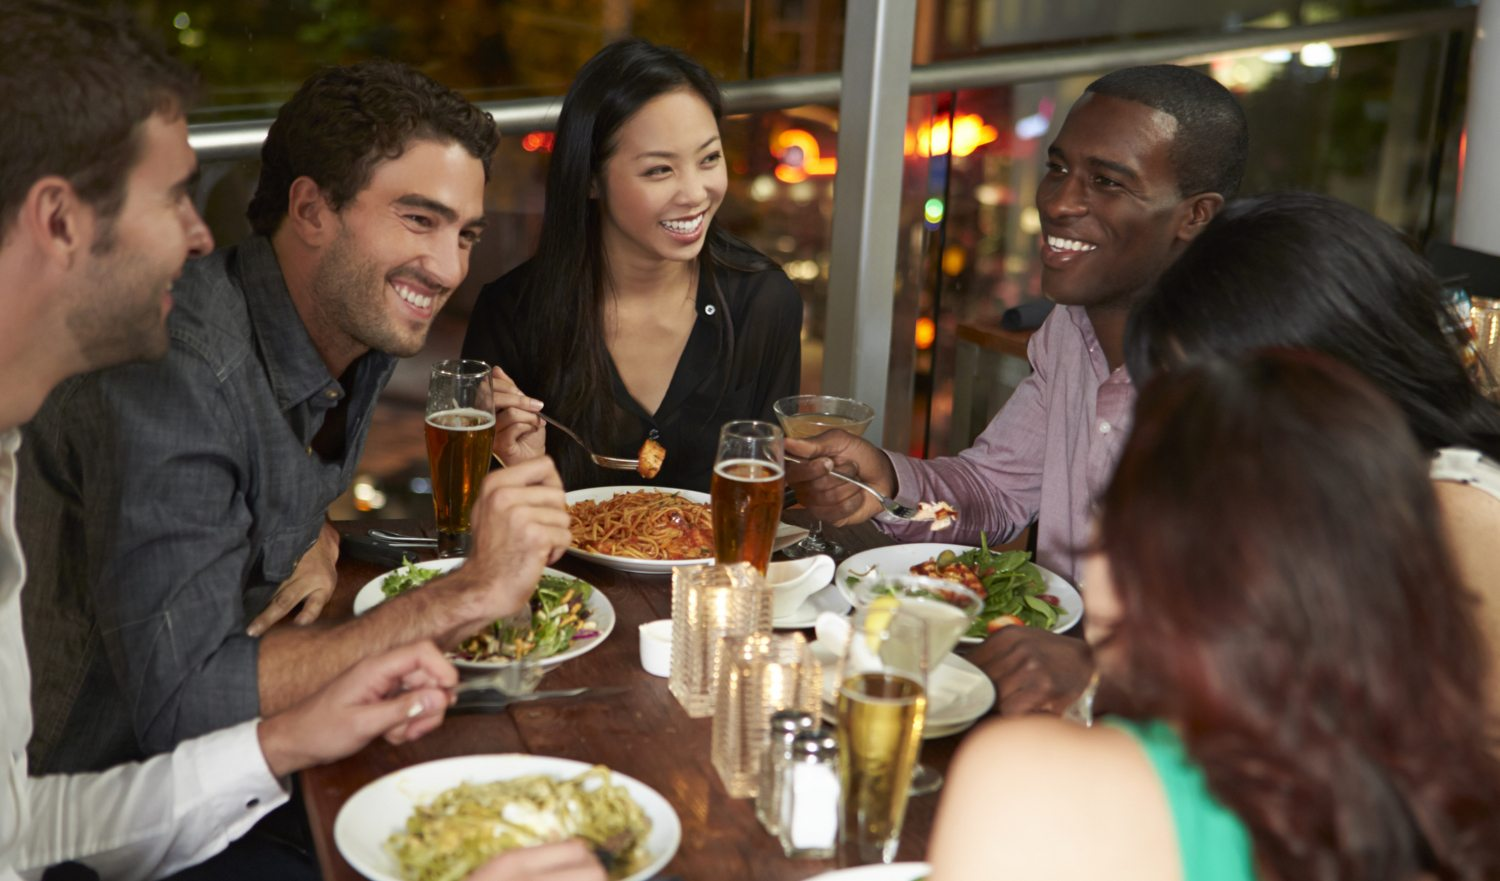 Group Of Friends Enjoying Evening Meal In Restaurant Smiling And Laughing Together.